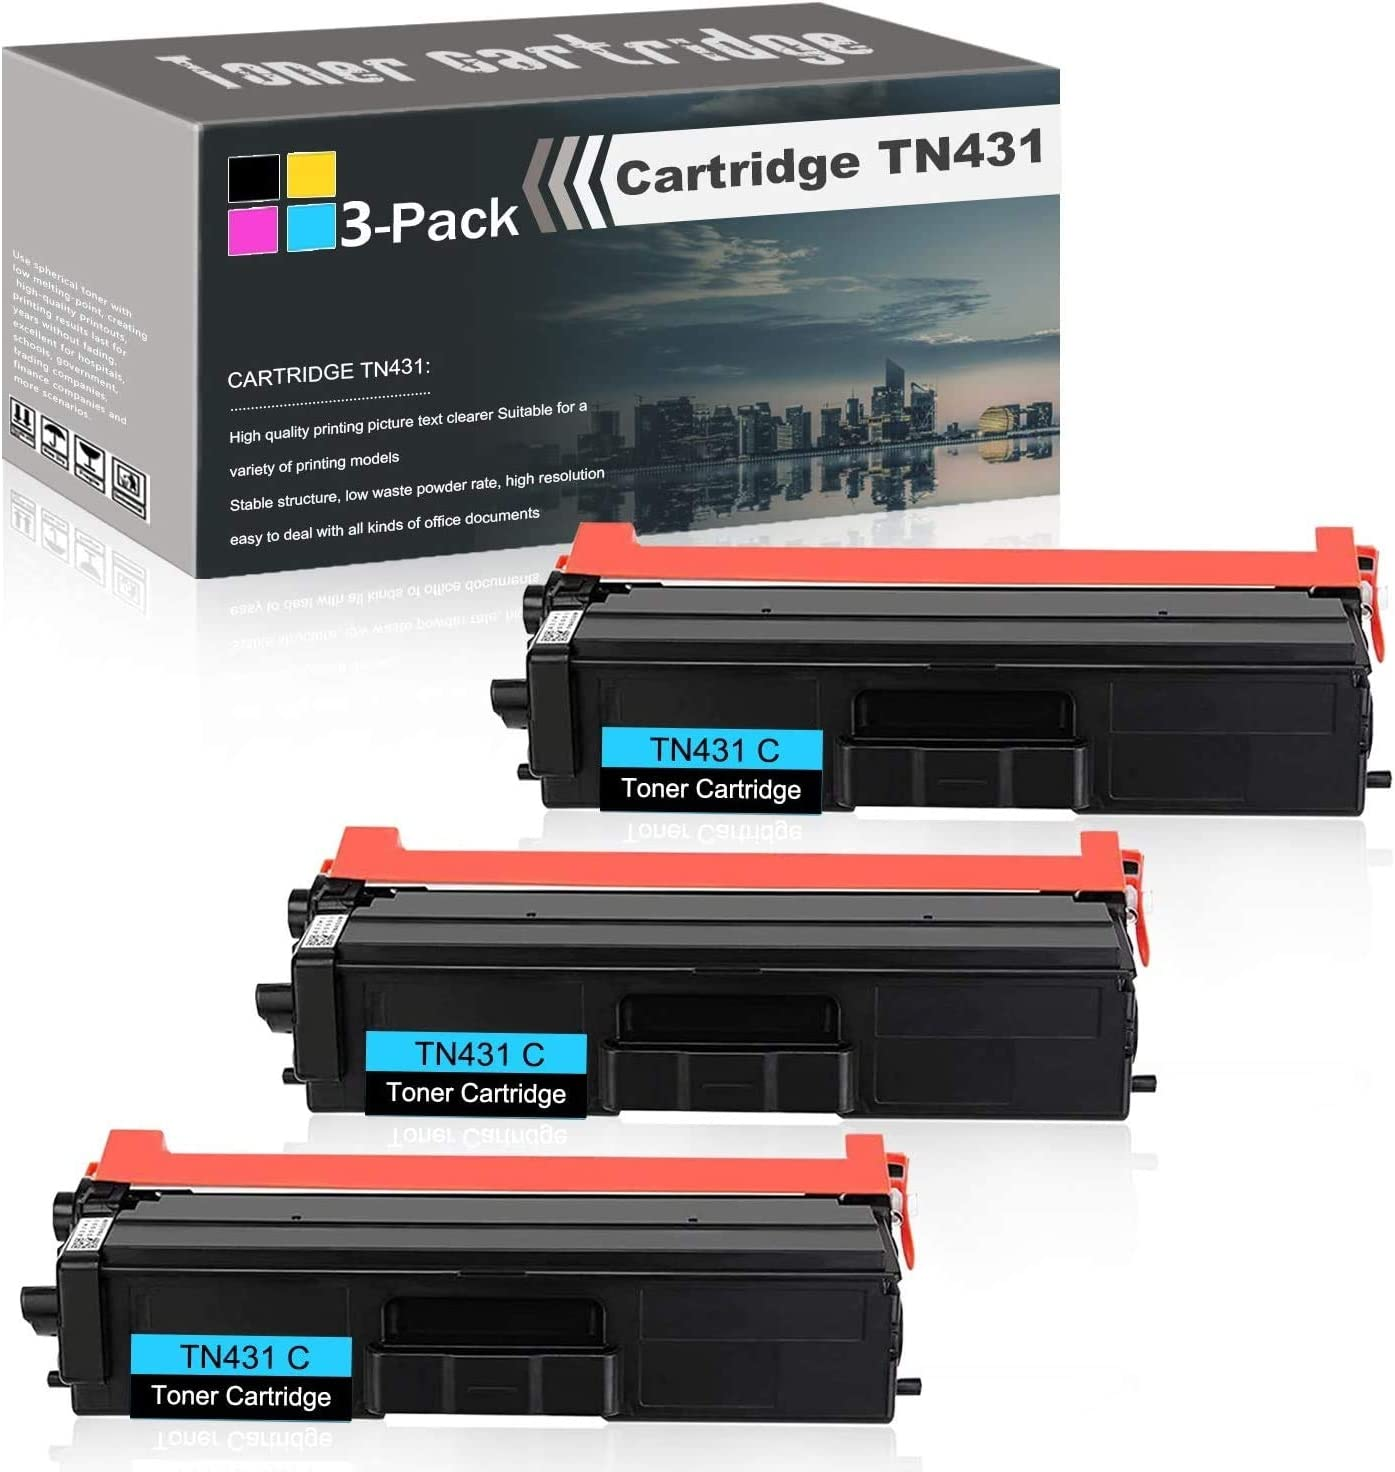 Compatible High Yield (Cyan,3-Pack) Laser Toner Cartridge Replacement for Brother TN431 use with HL-L8260CDW L8360CDW L8360CDWT L9310CDW L9310CDWT L9310CDWTT DCP-L8410CDW MFC-L8610CDW Printers Toner.